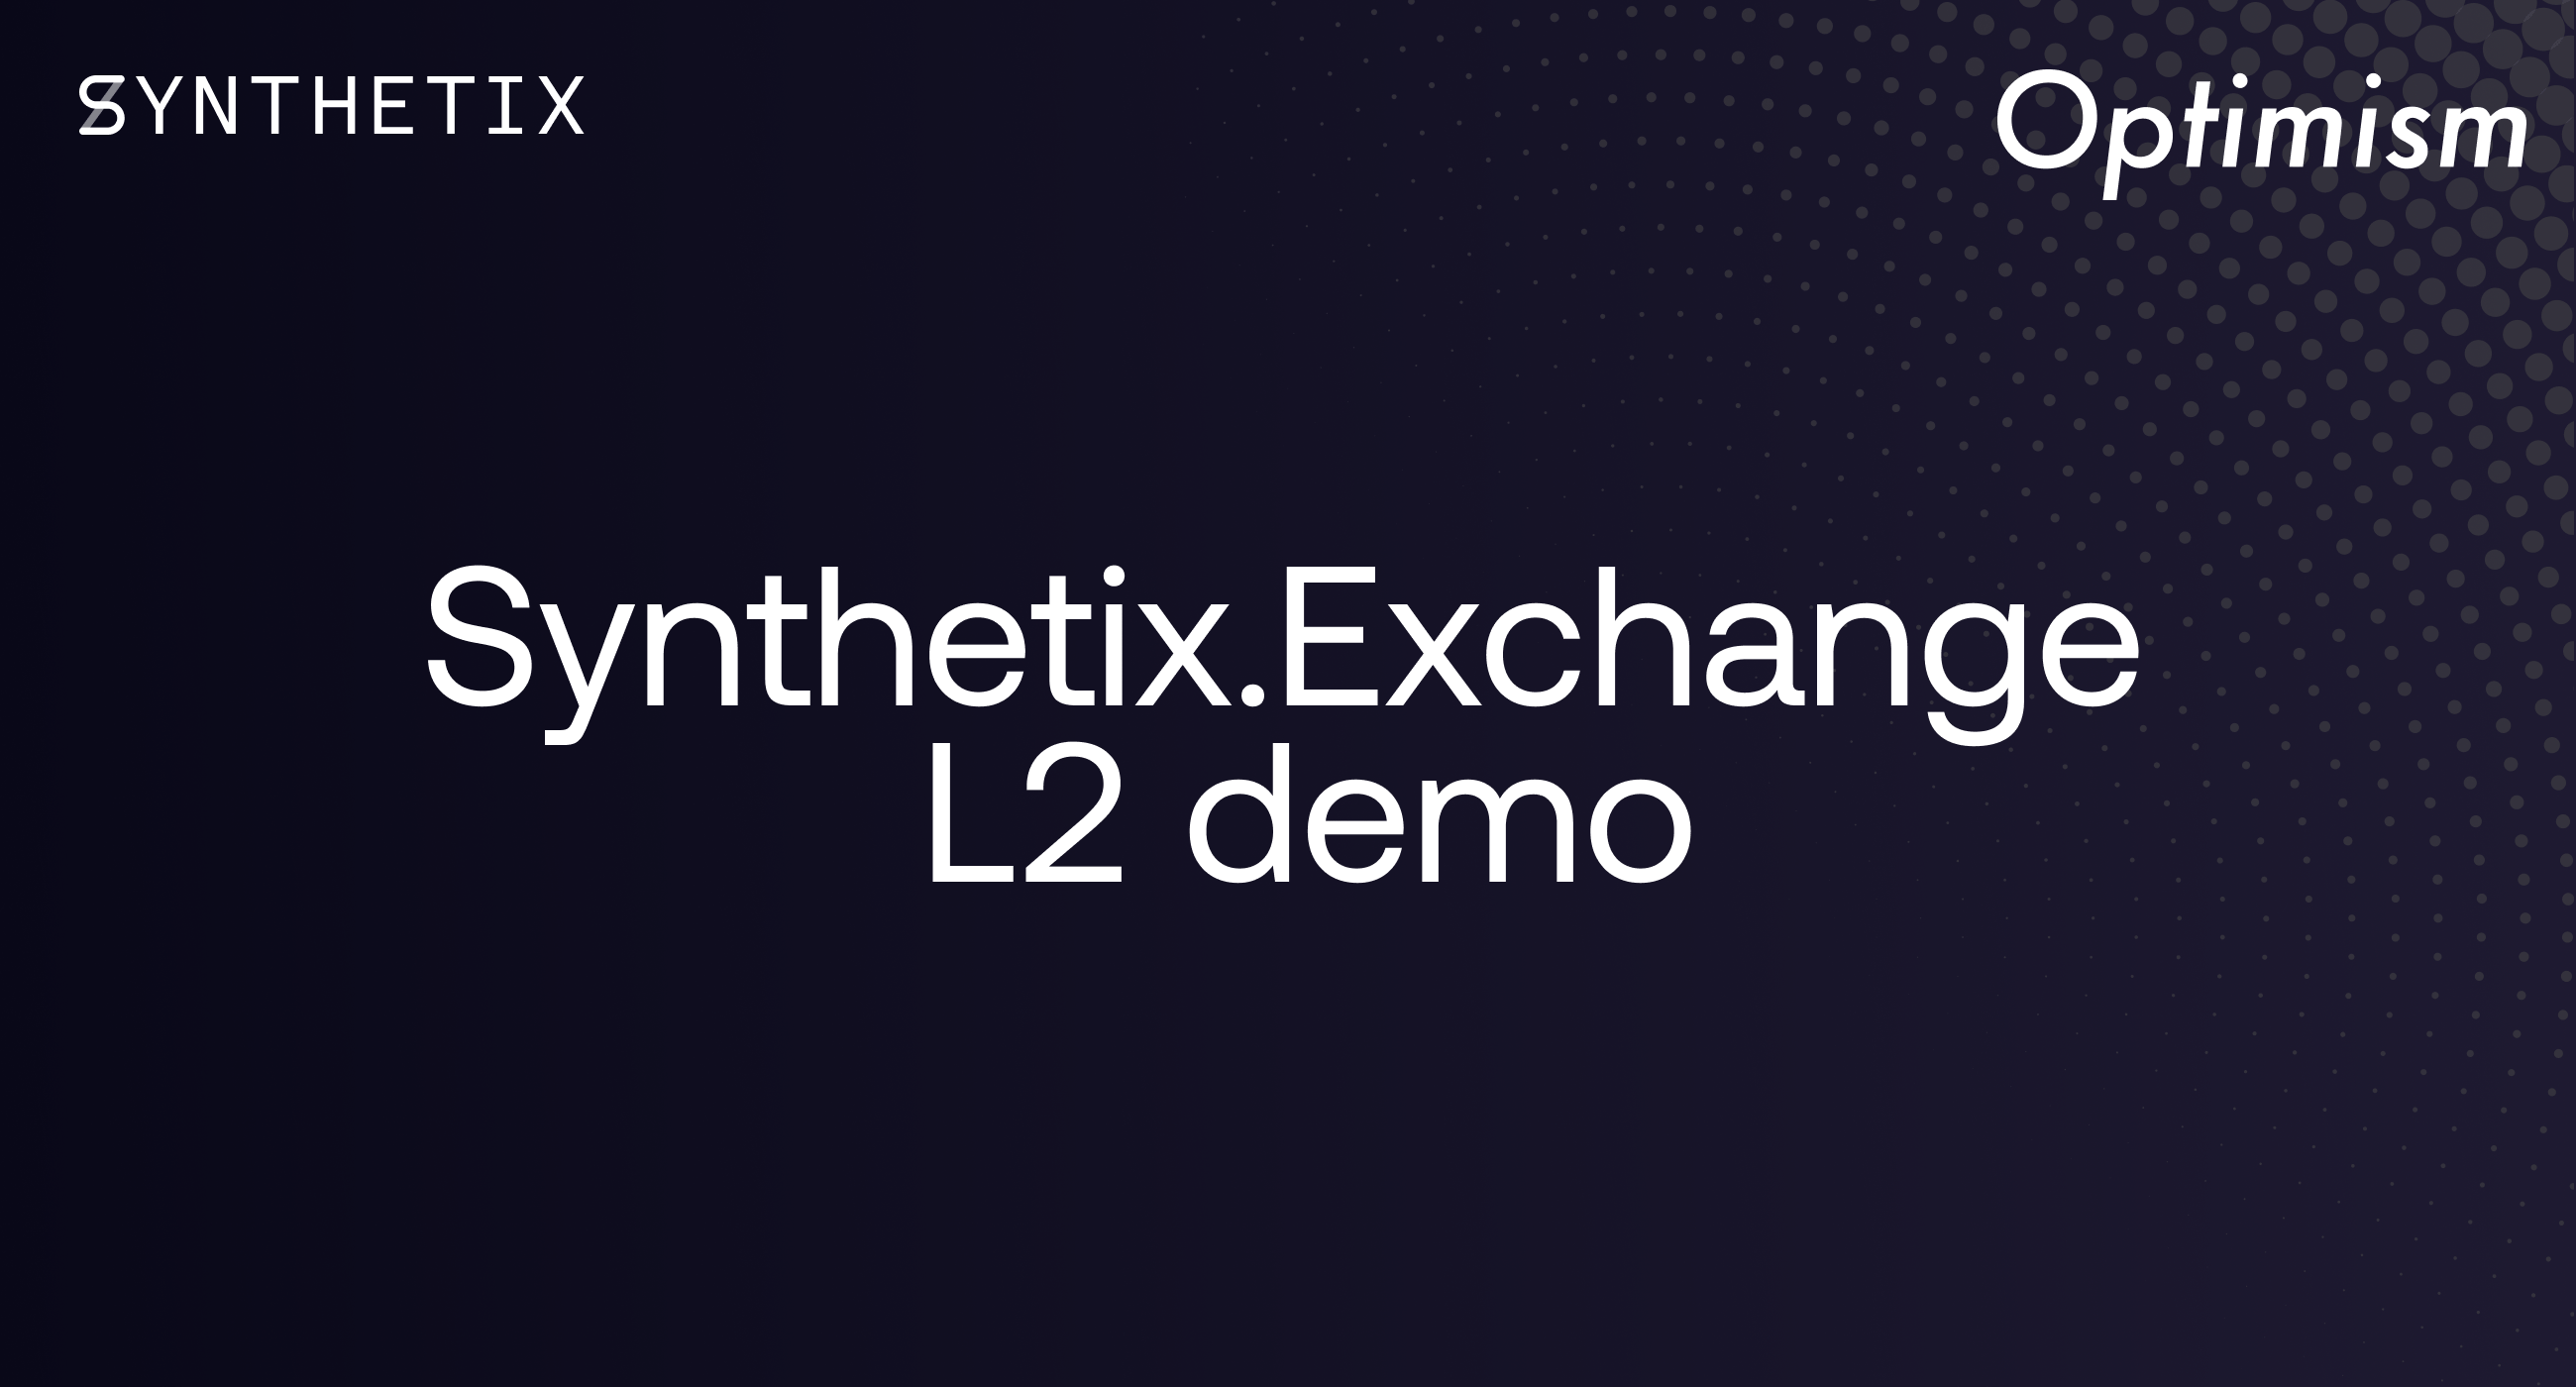 Synthetix and Optimism Launch Synthetix.Exchange L2 Demo on OVM